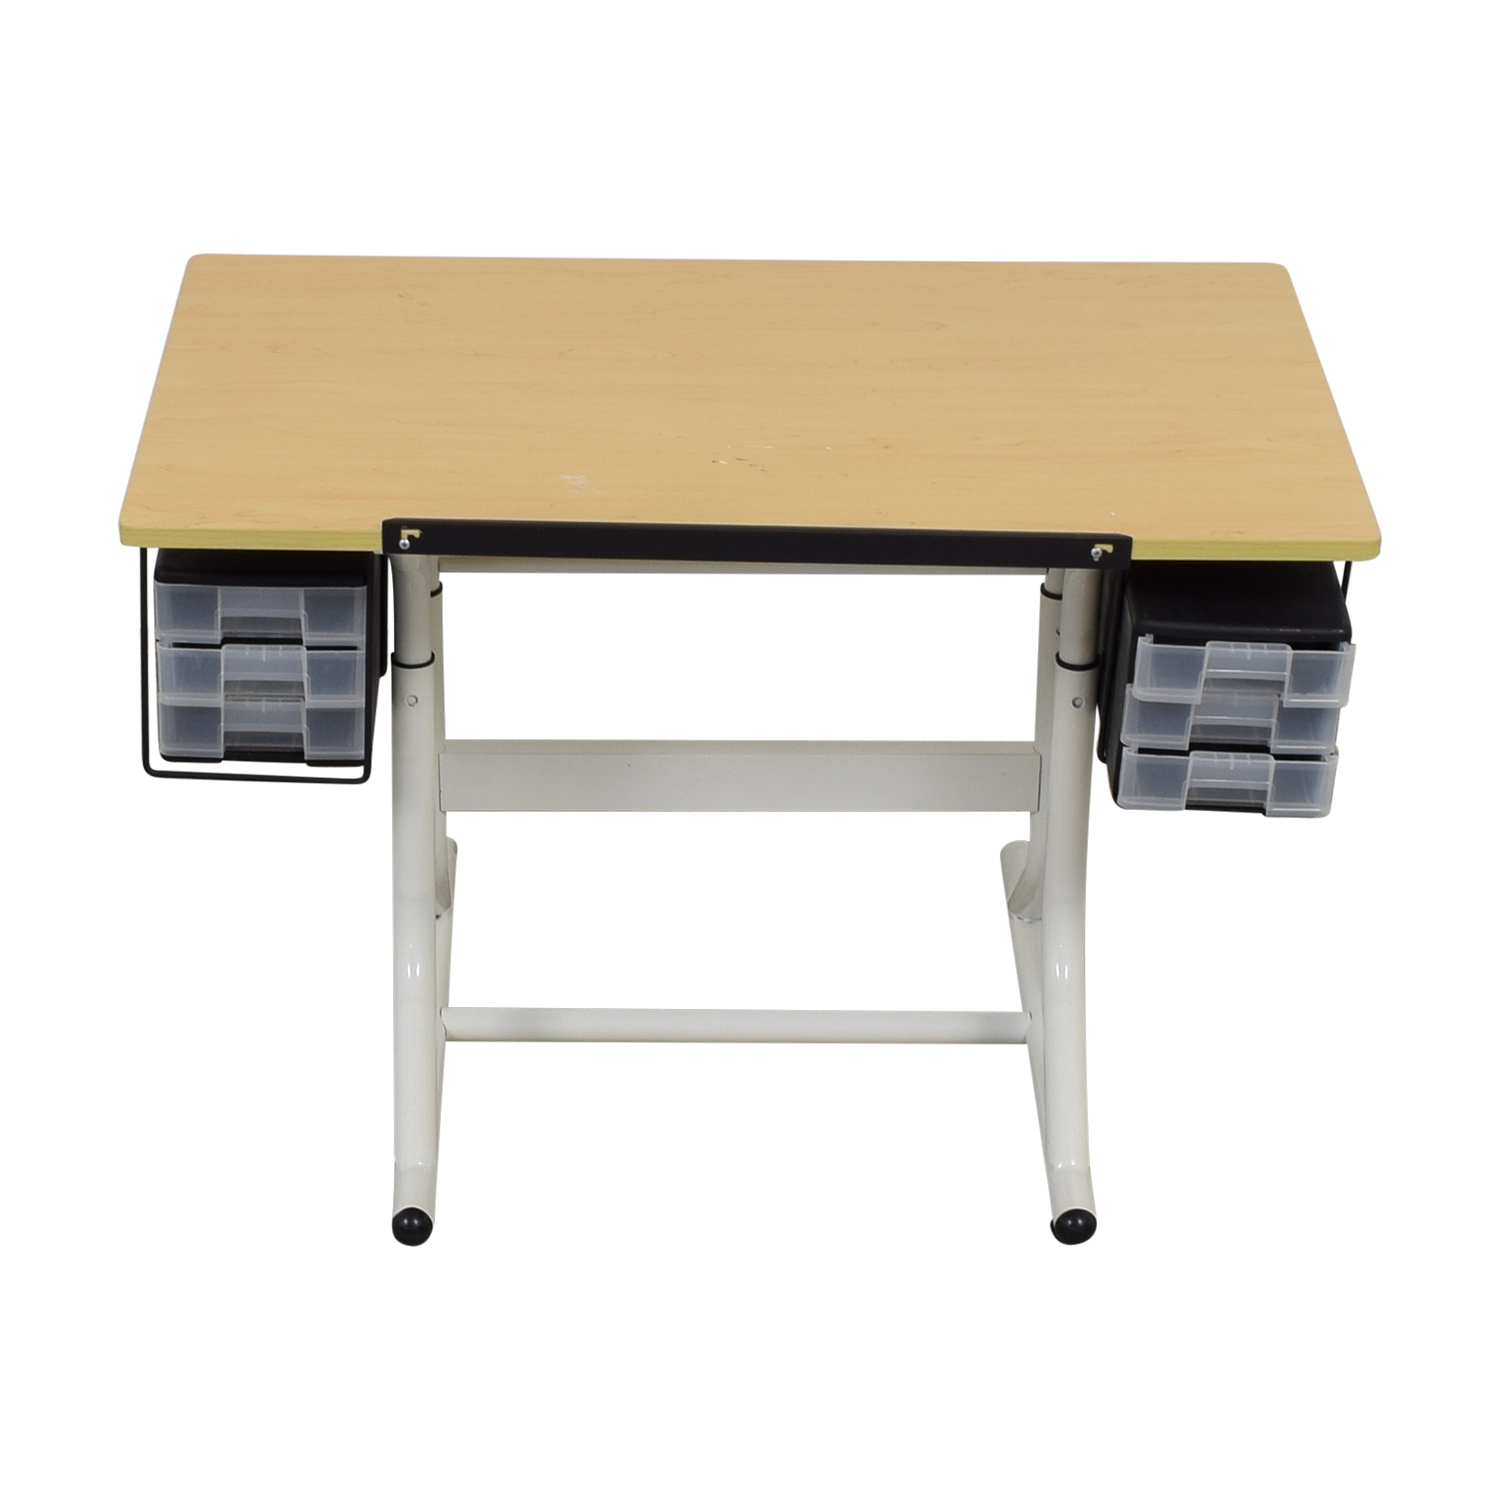 Alvin Home Office CraftMaster Alvin Home Office CraftMaster Art and Hobby Table price